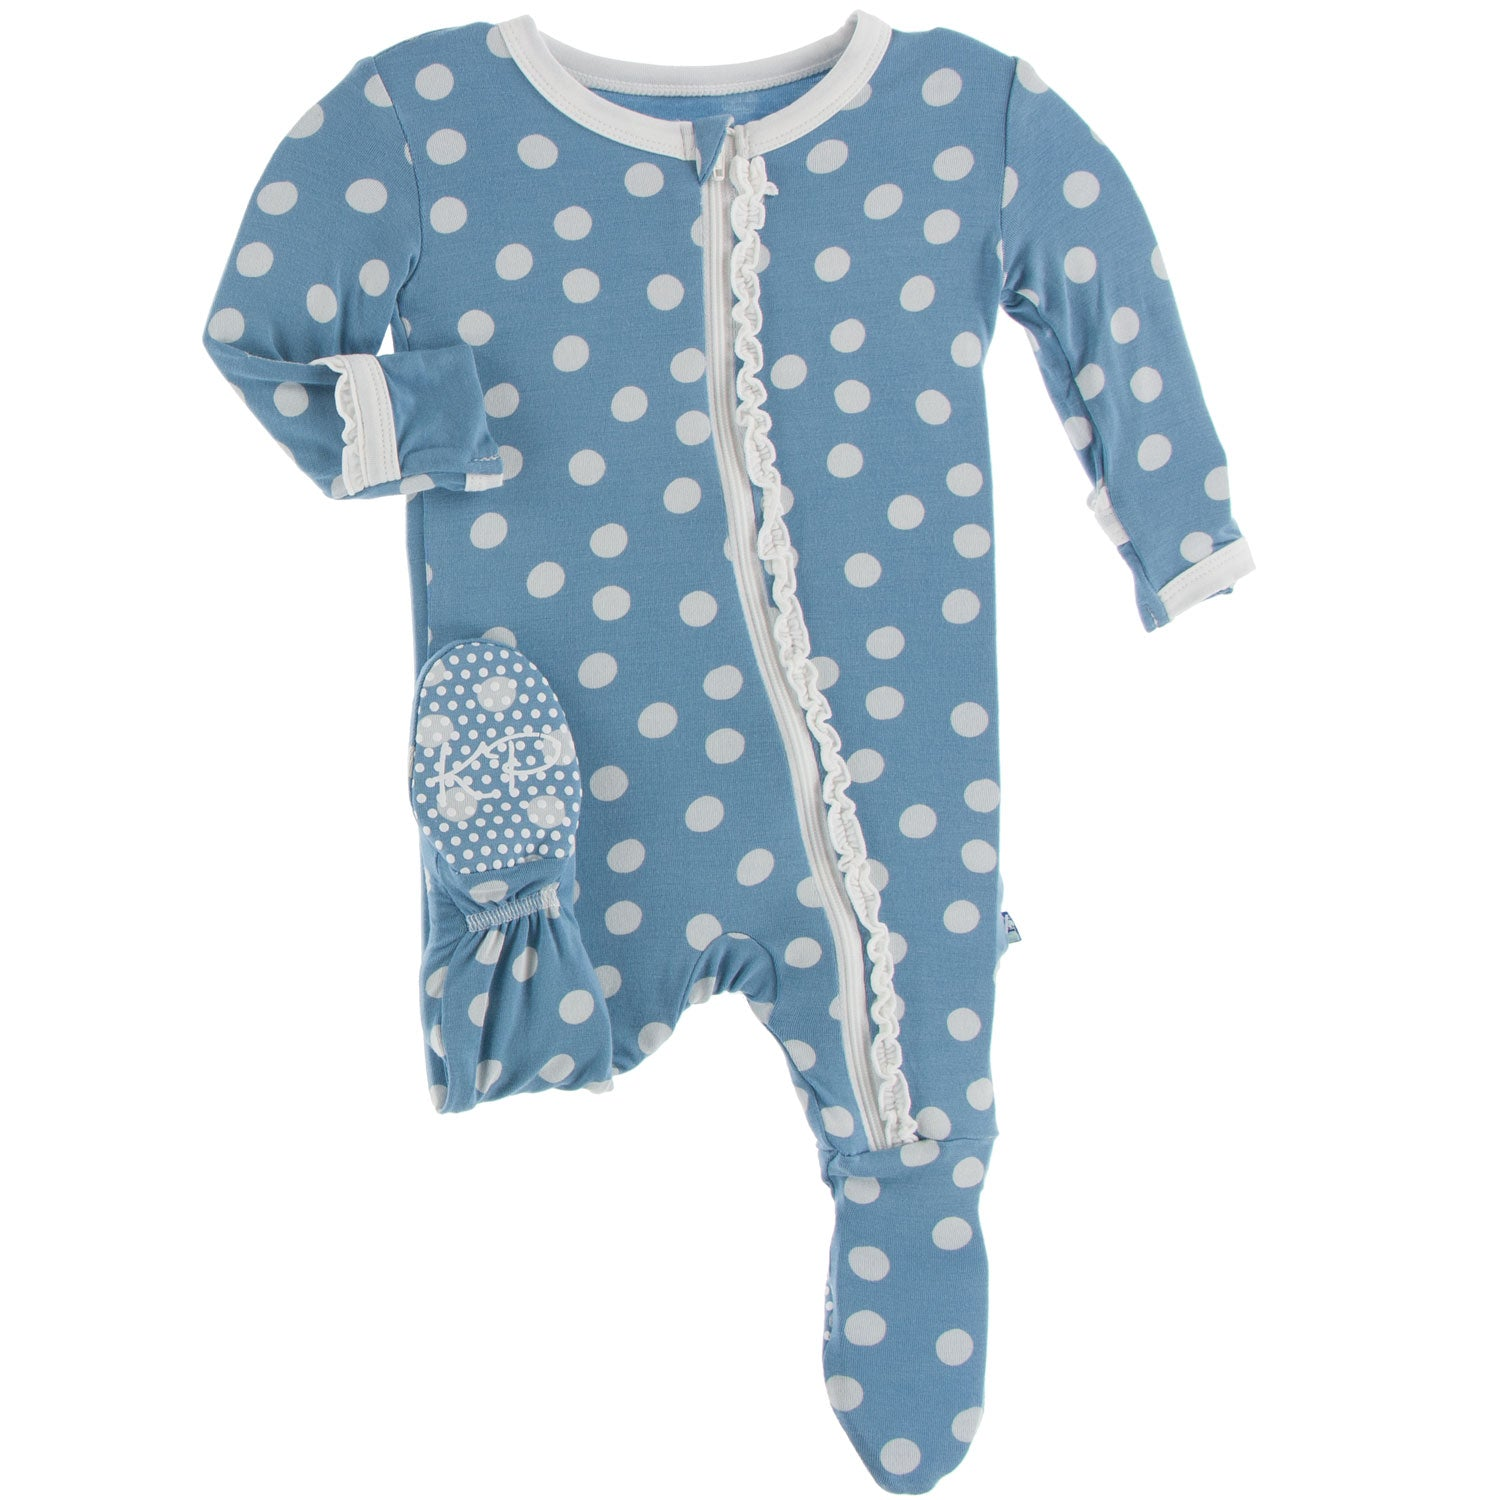 Kickee Pants Muffin Ruffle Footie - Blue Moon Snowballs